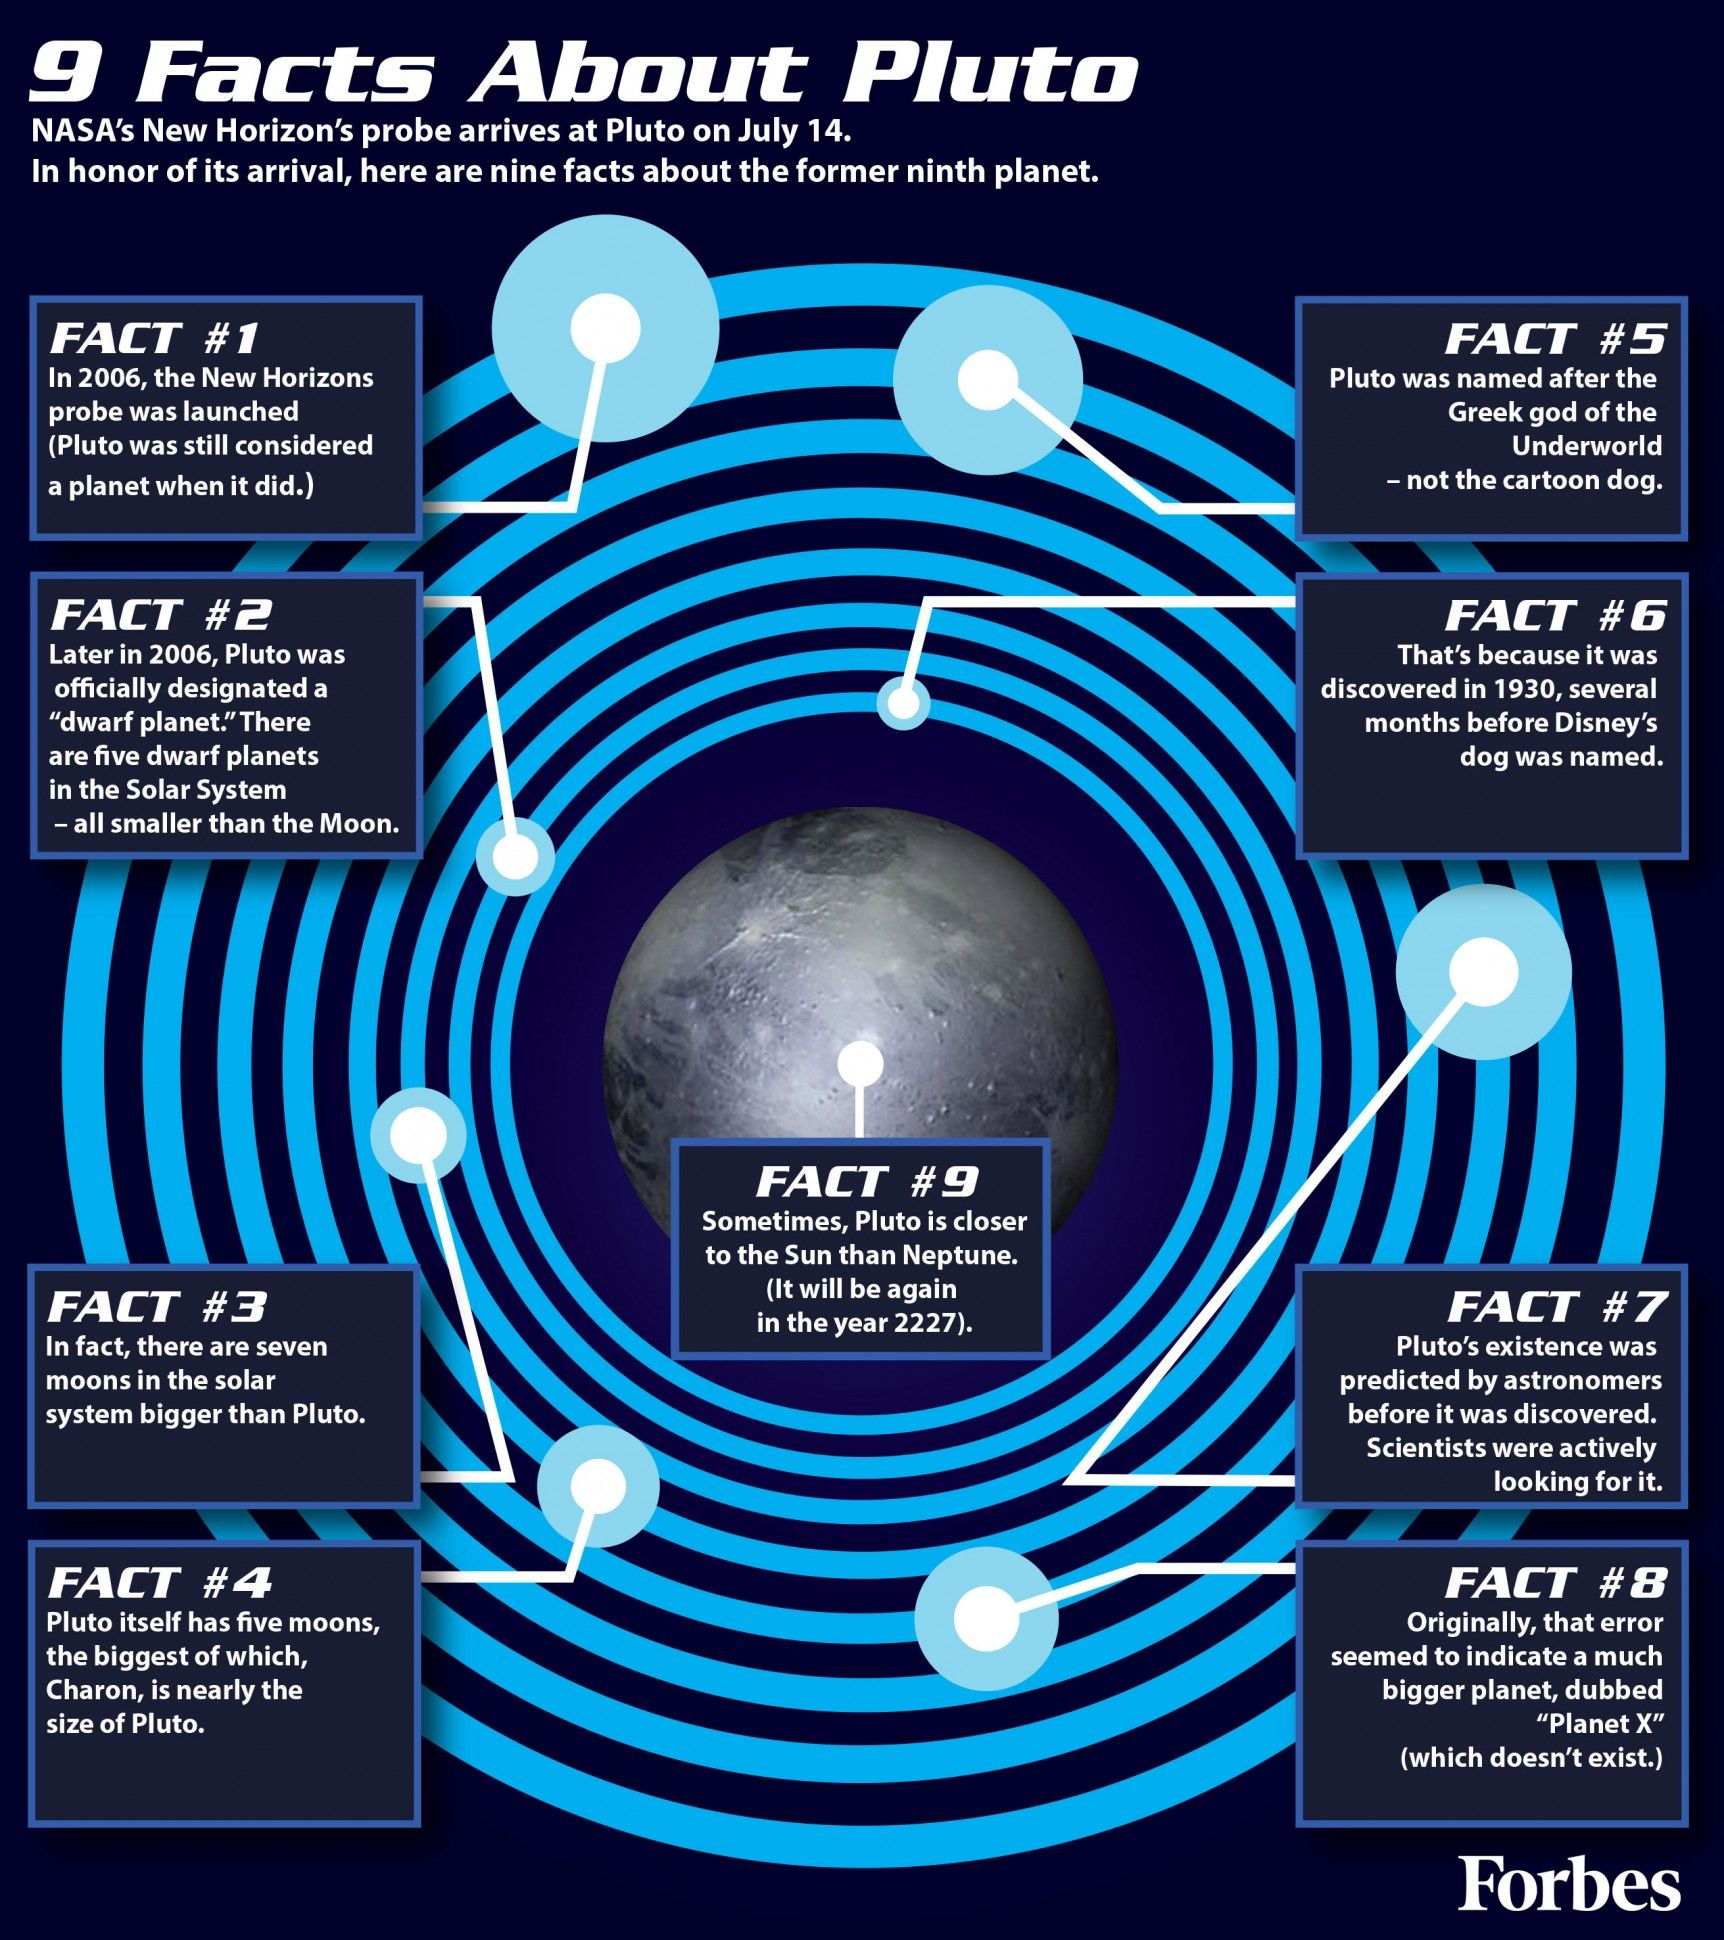 Nine Facts About Pluto Infographic